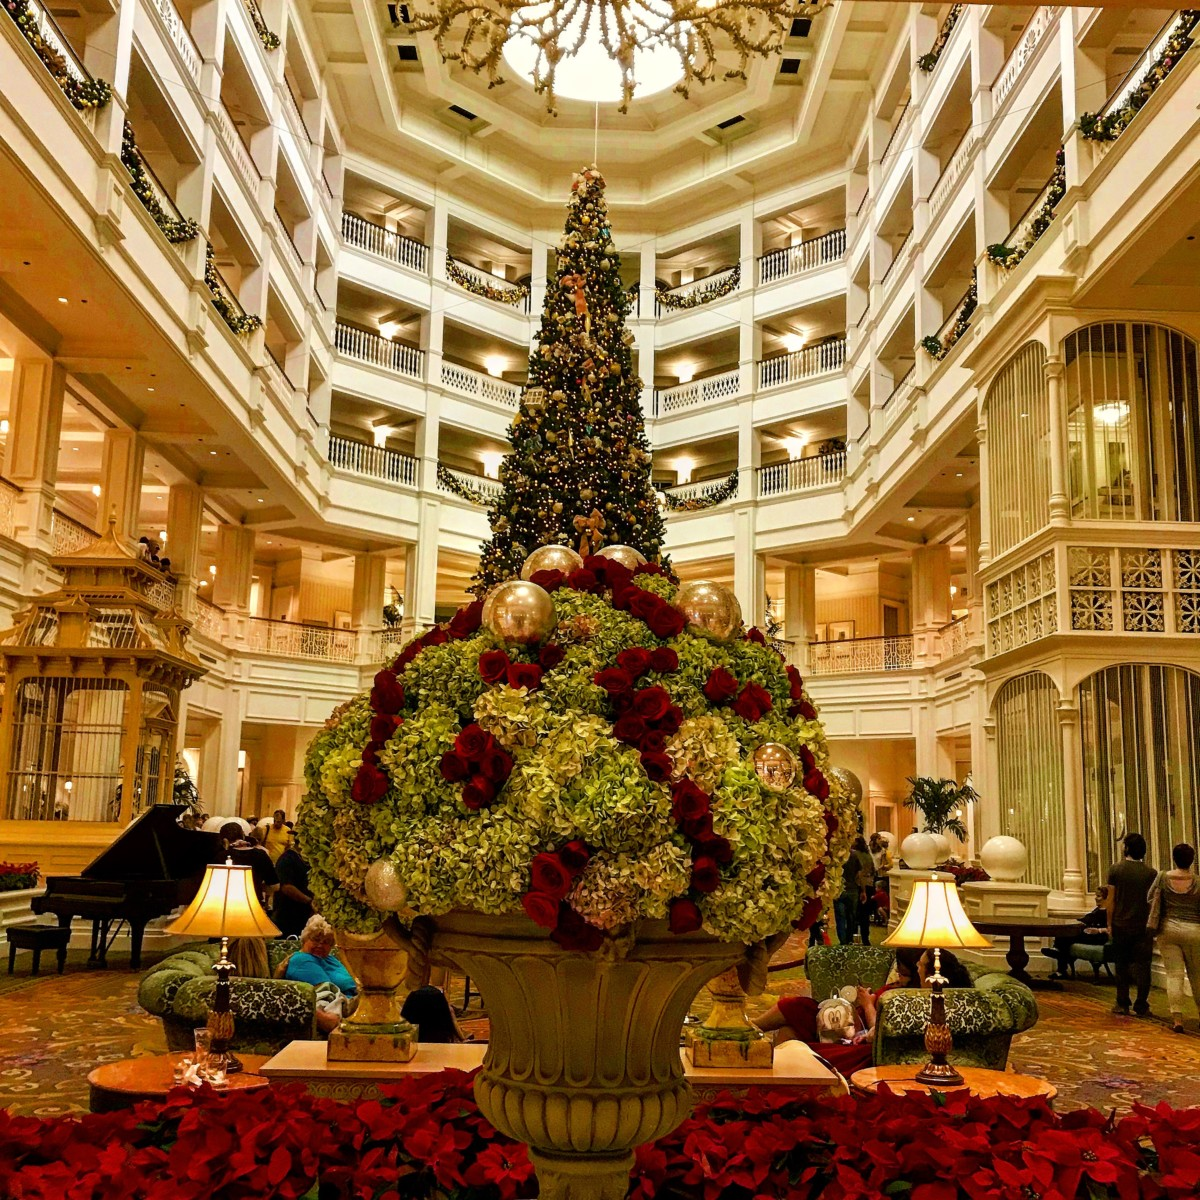 Holiday Decor at Disney's Grand Floridian Resort and Spa 2